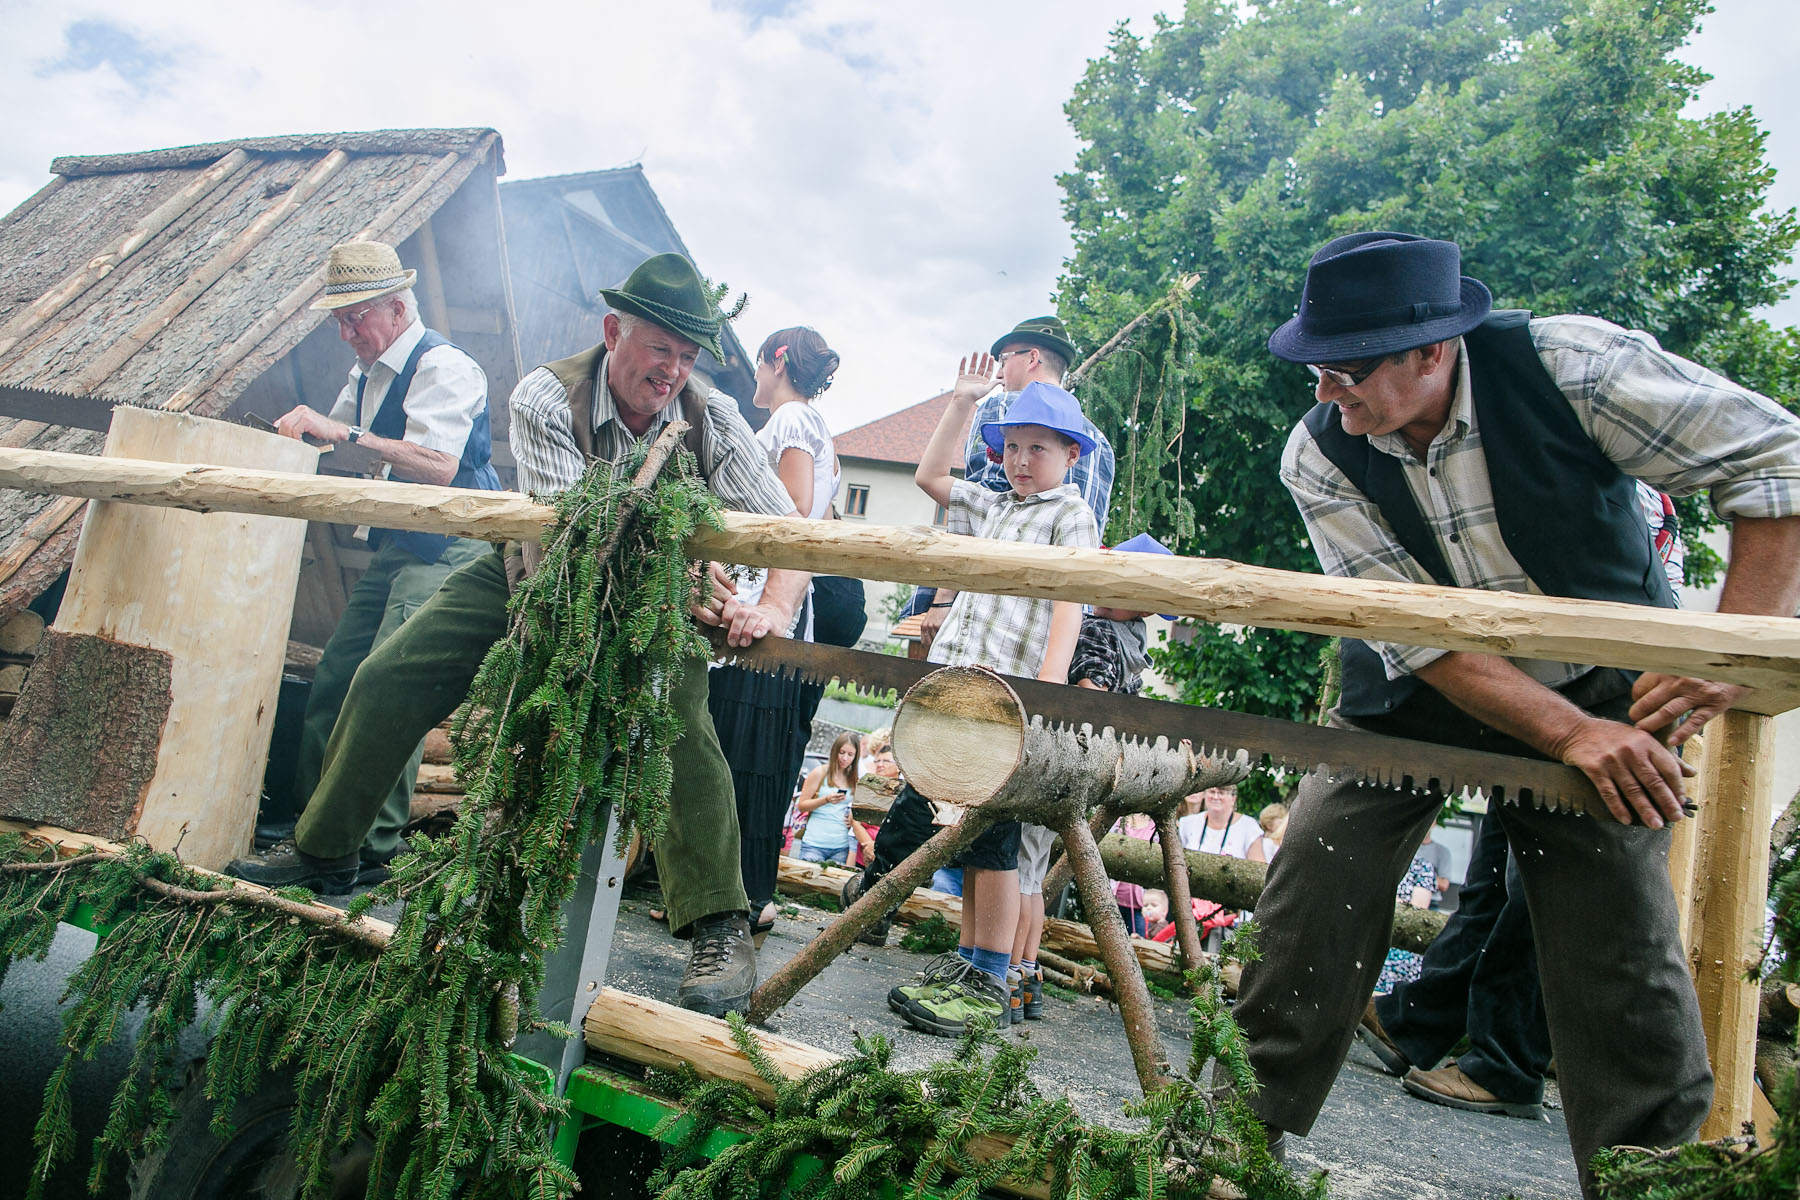 Old timber trade traditions and techinques are displayed in an ethnographic procession during the 55th Raftsmen Ball in Ljubno ob Savinji, Slovenia.